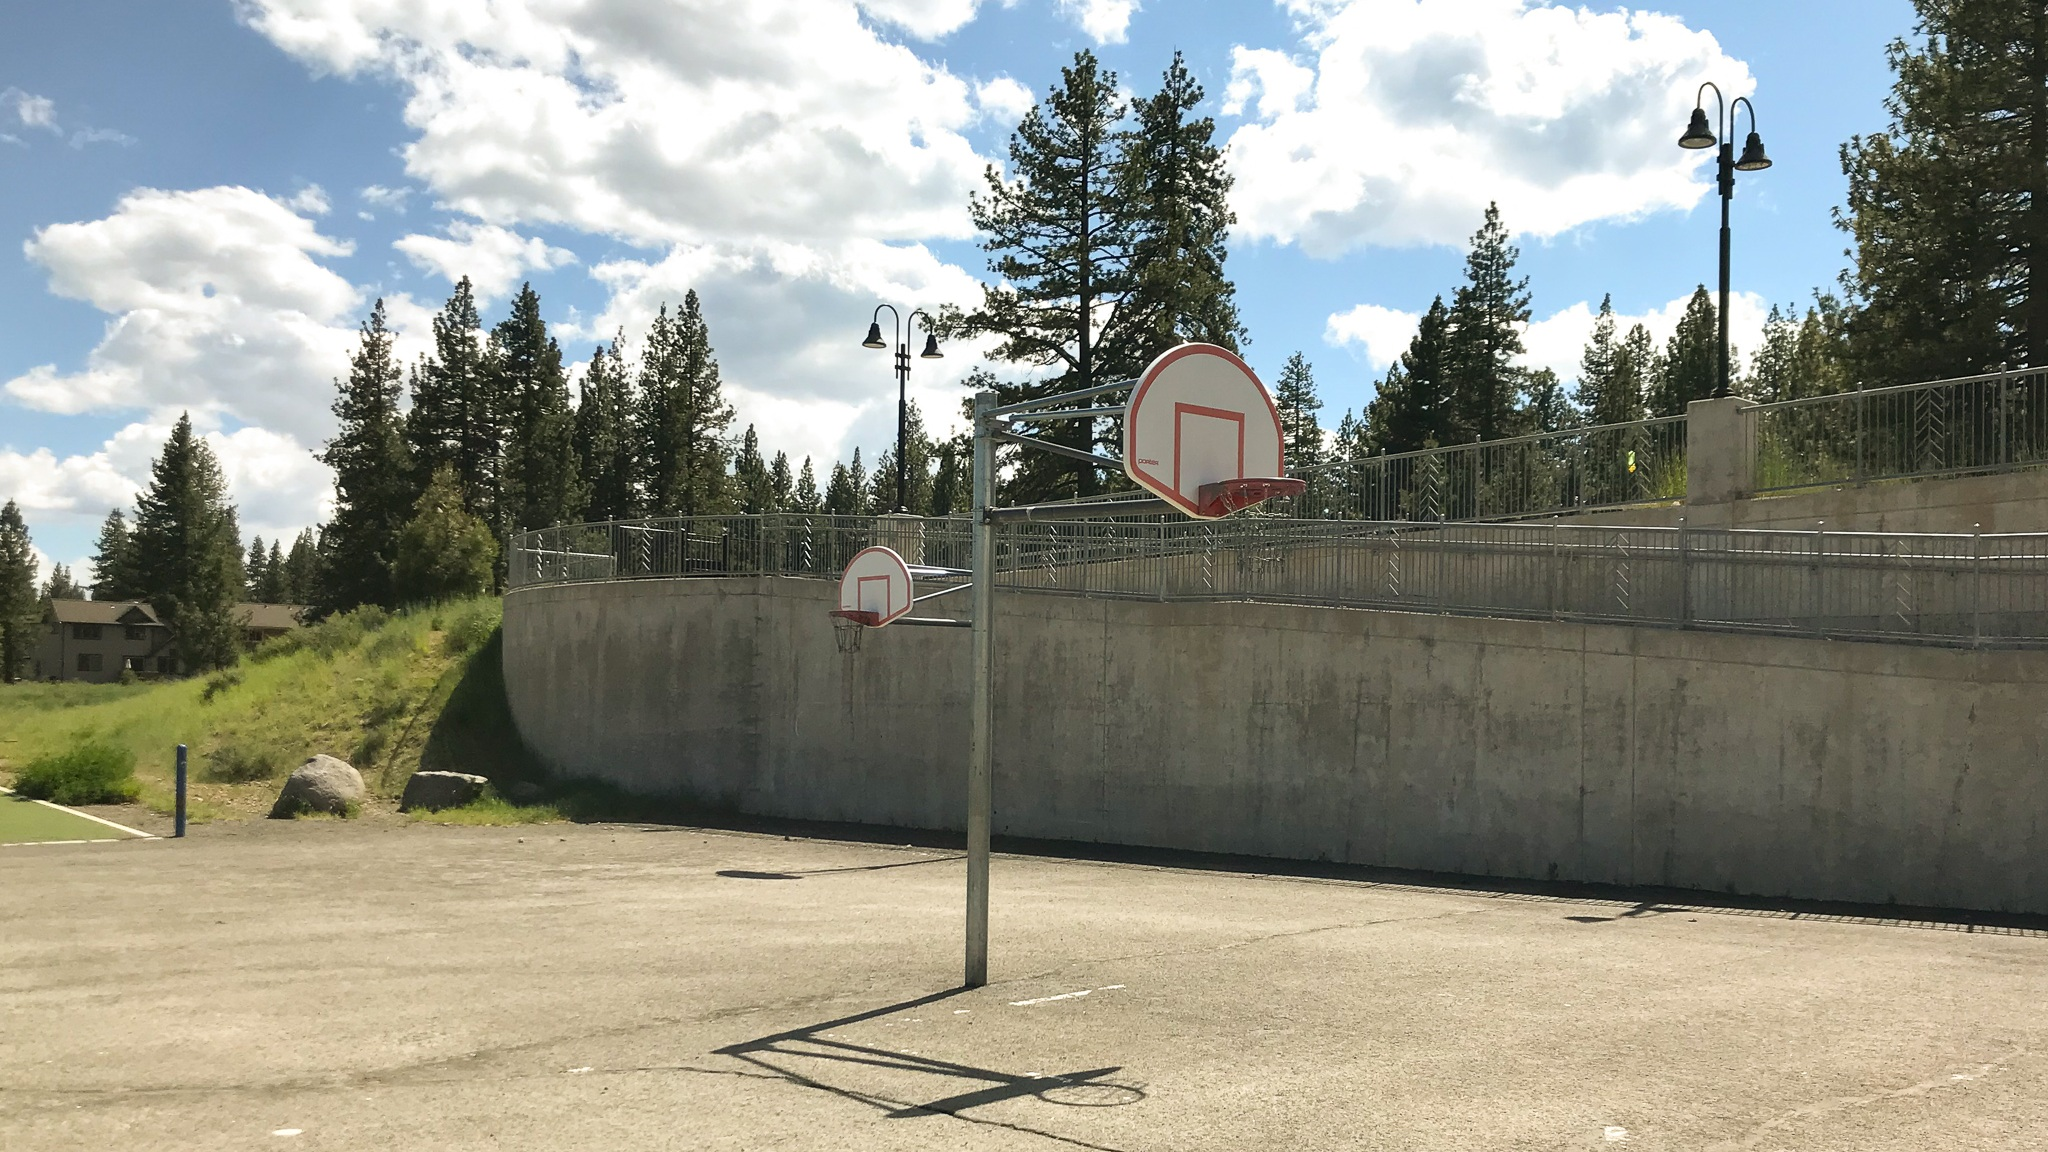 Truckee+basketball+at+elementary+school